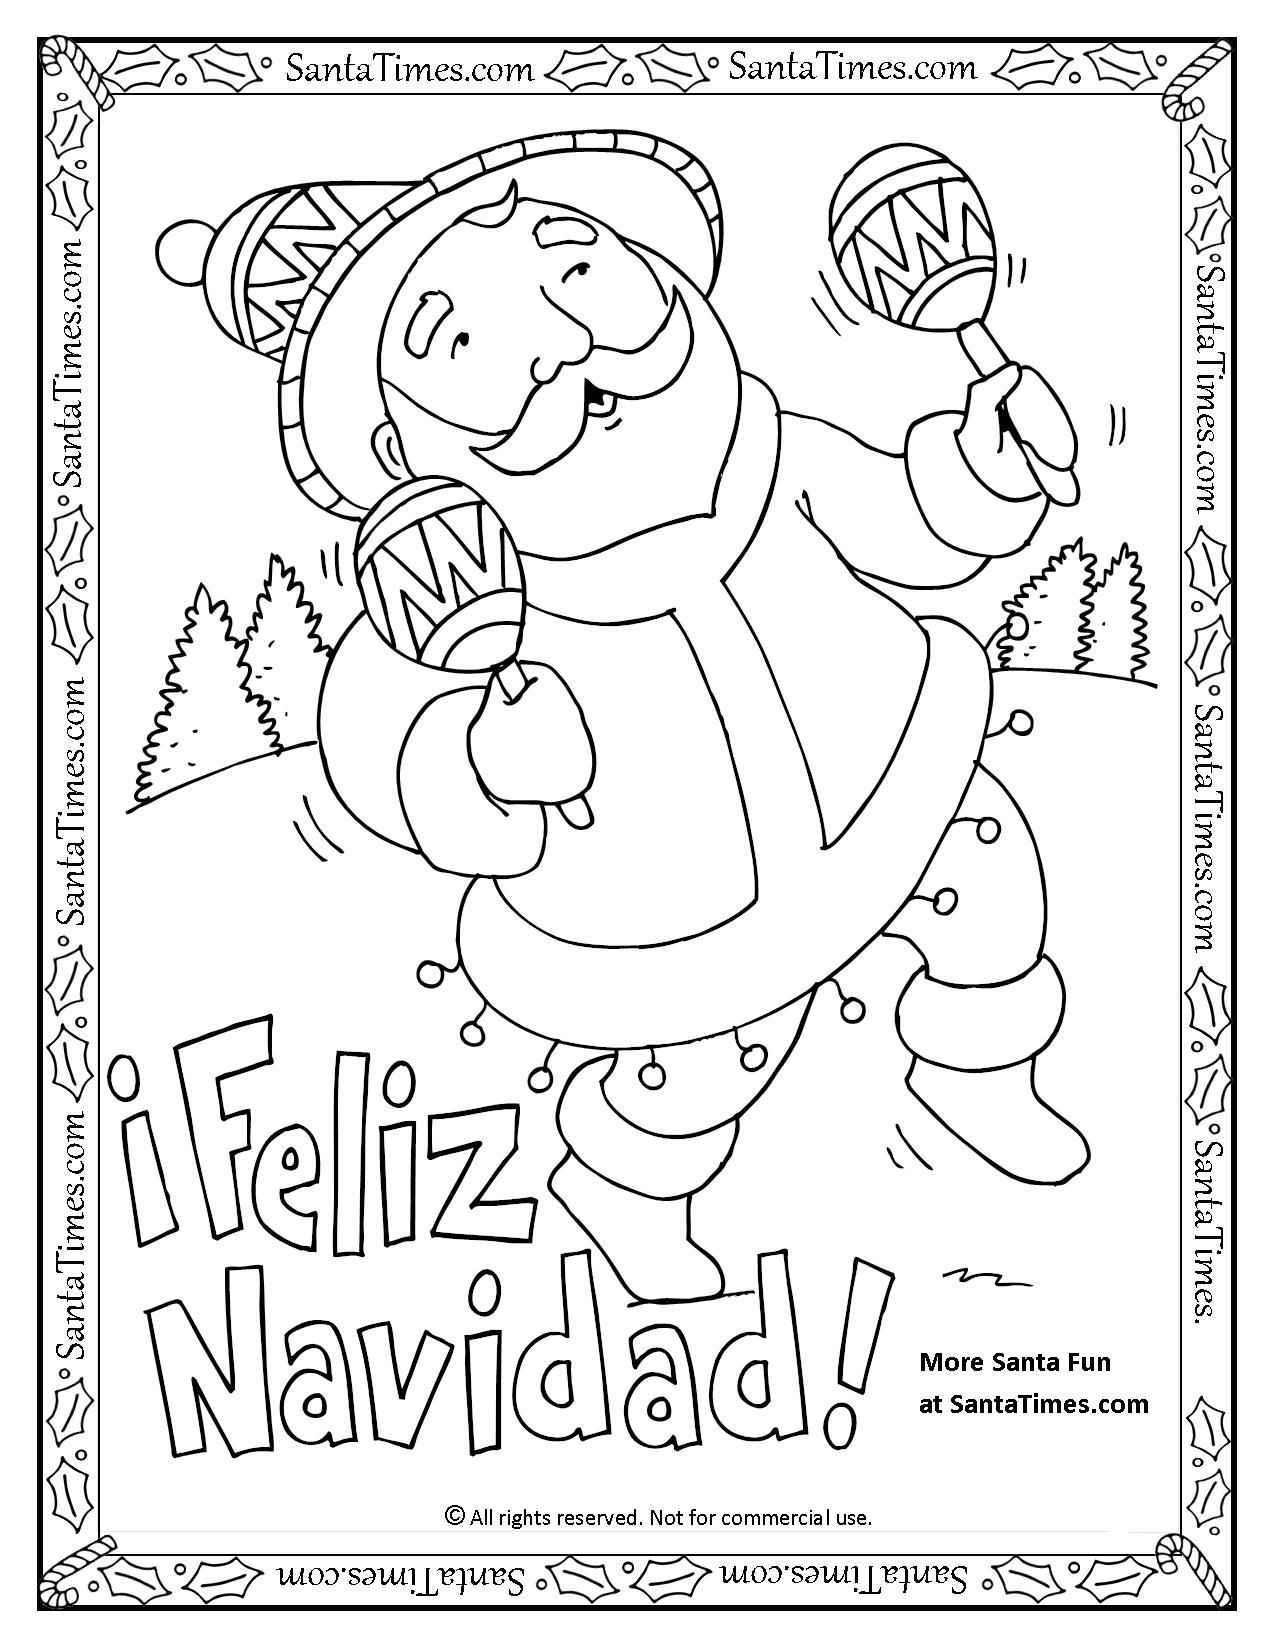 Coloring Pages For Christmas In Spanish. Feliz Navidad Coloring Pages Completed with Lyrics  Printable Page Papa Noel quiere desearles